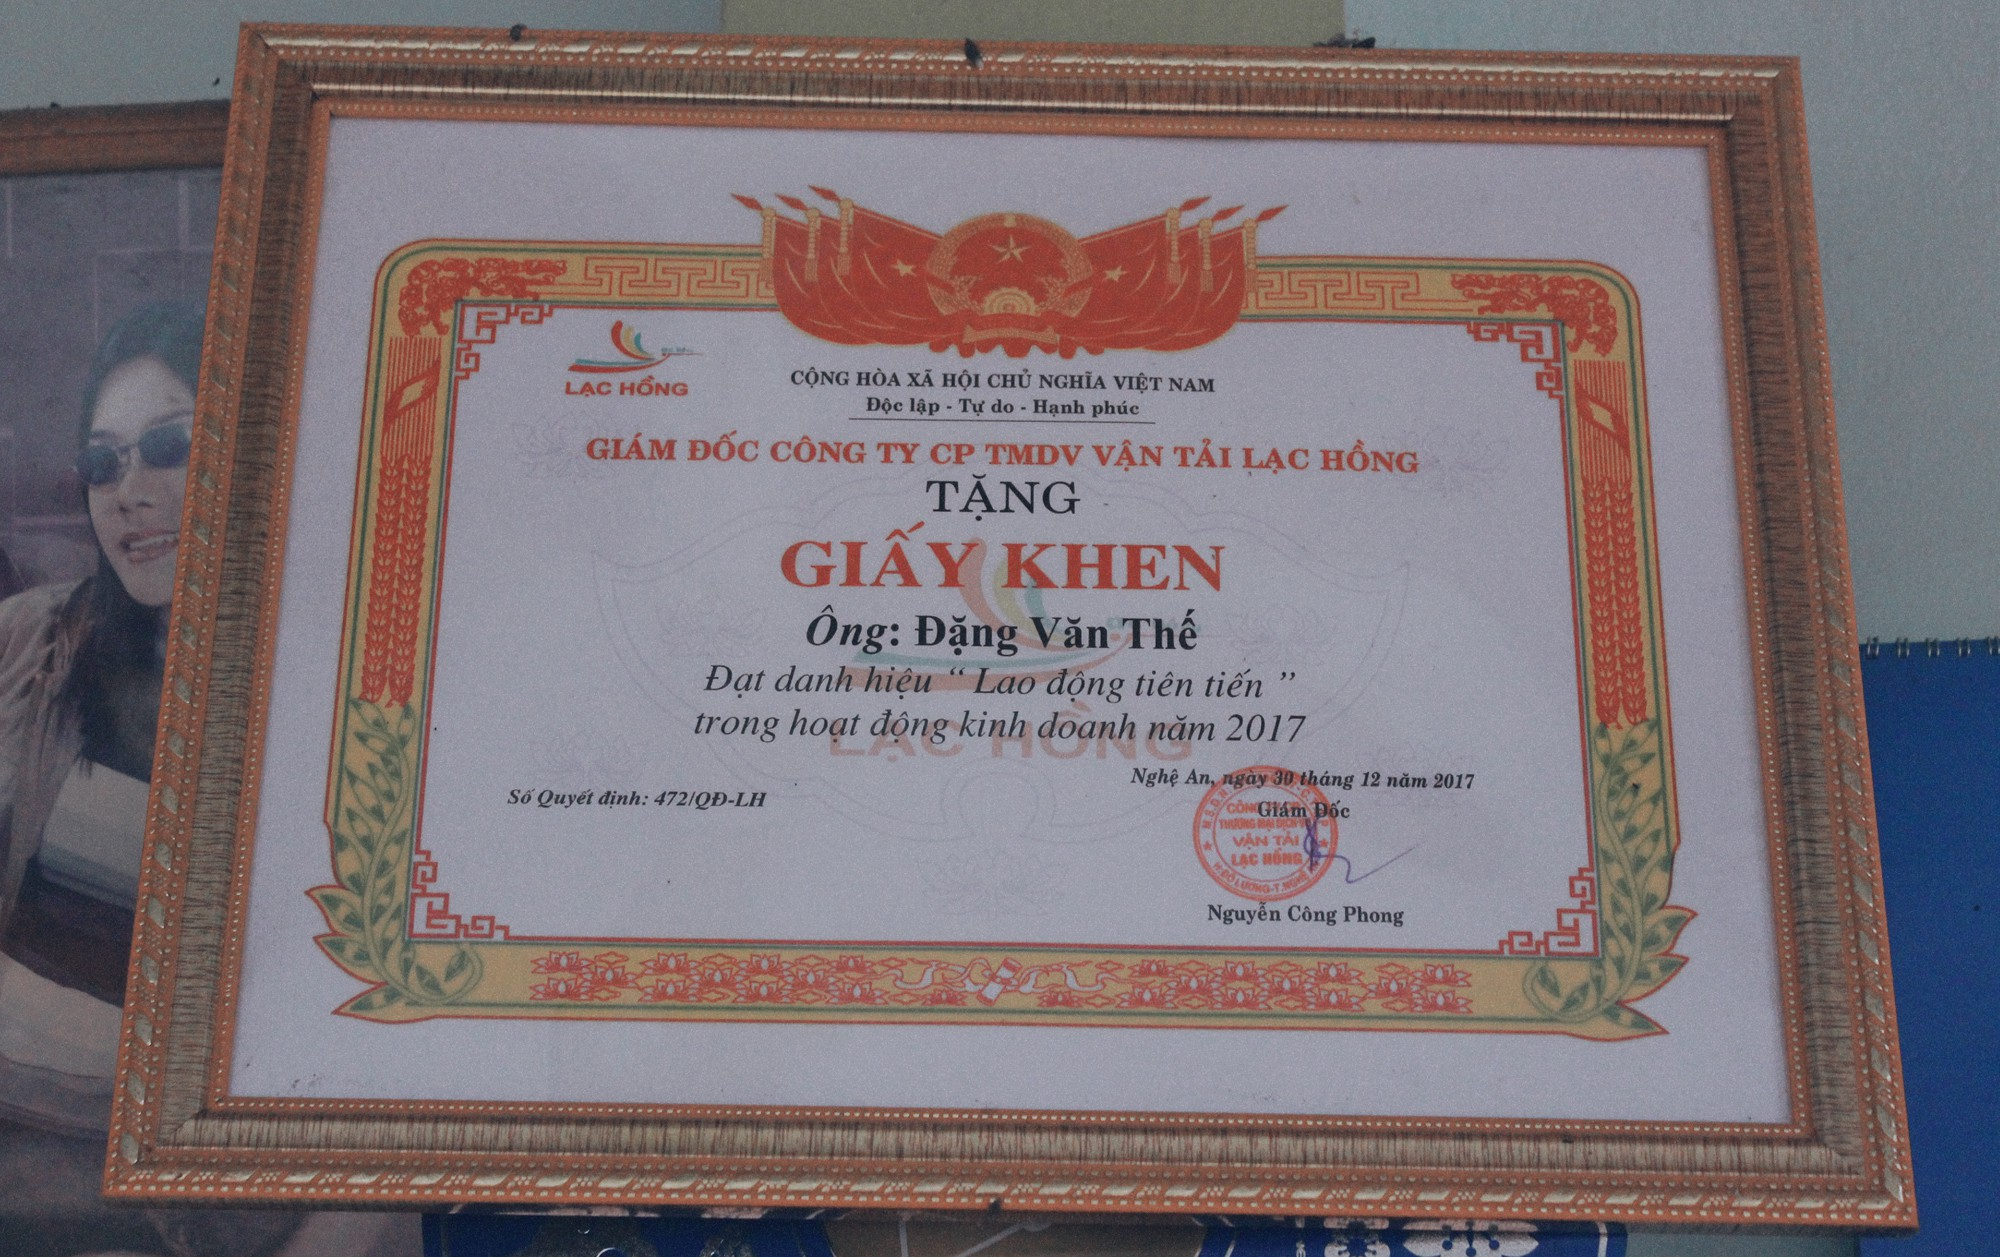 Dang Van The received a certificate of recognition from the company thanks to his contribution. Photo: Tuoi Tre